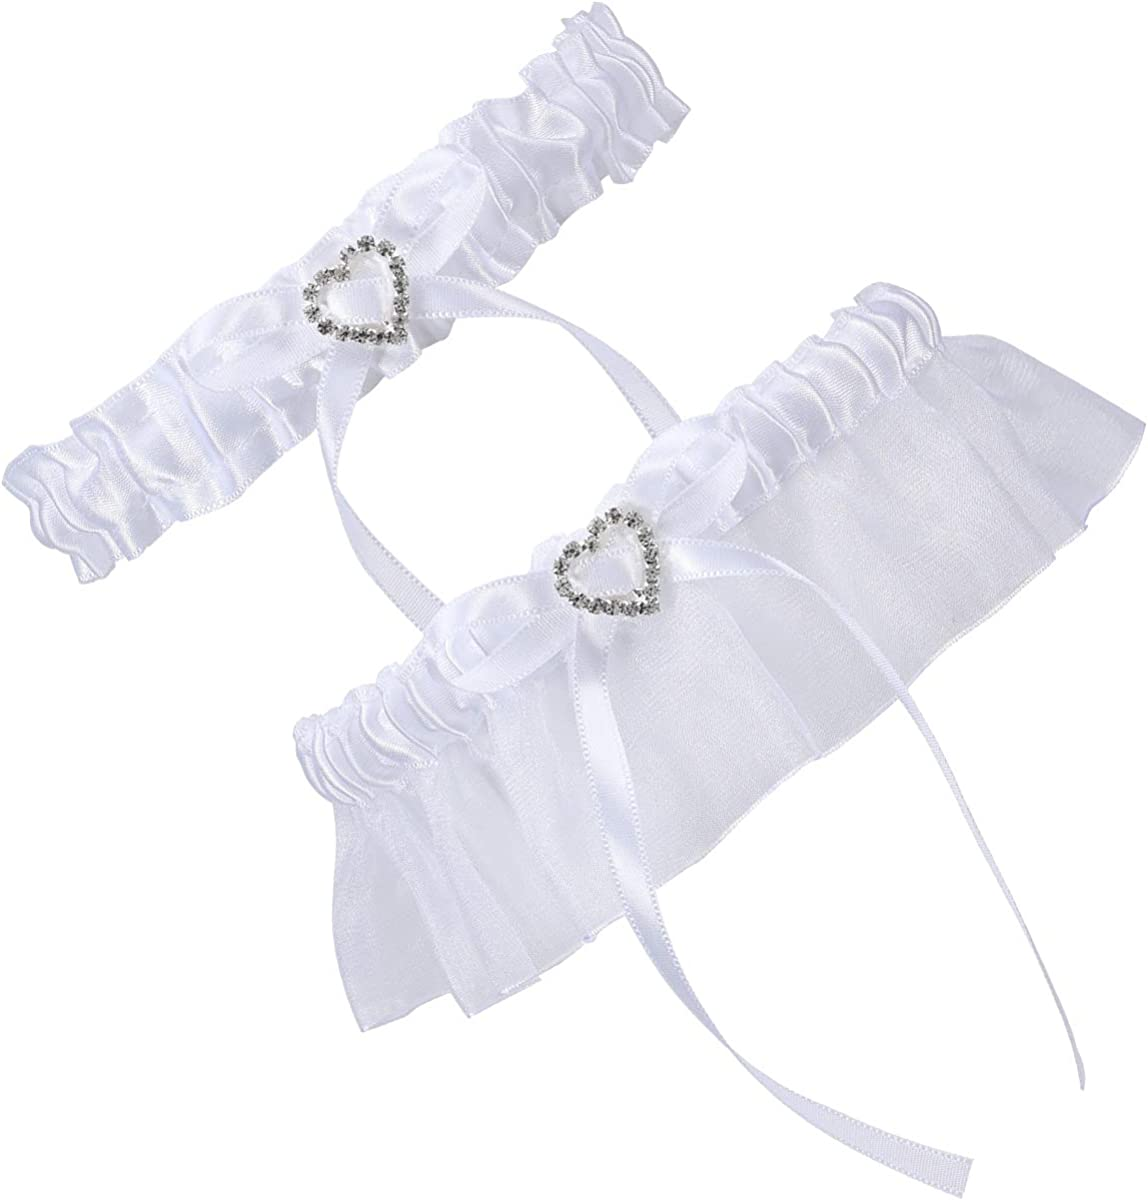 Cosweet 2 Pcs Lace Wedding Bridal Garter Set- Stretchy Bridal Garters with Rhinestone Satin Bow for Bride Accessories Dress